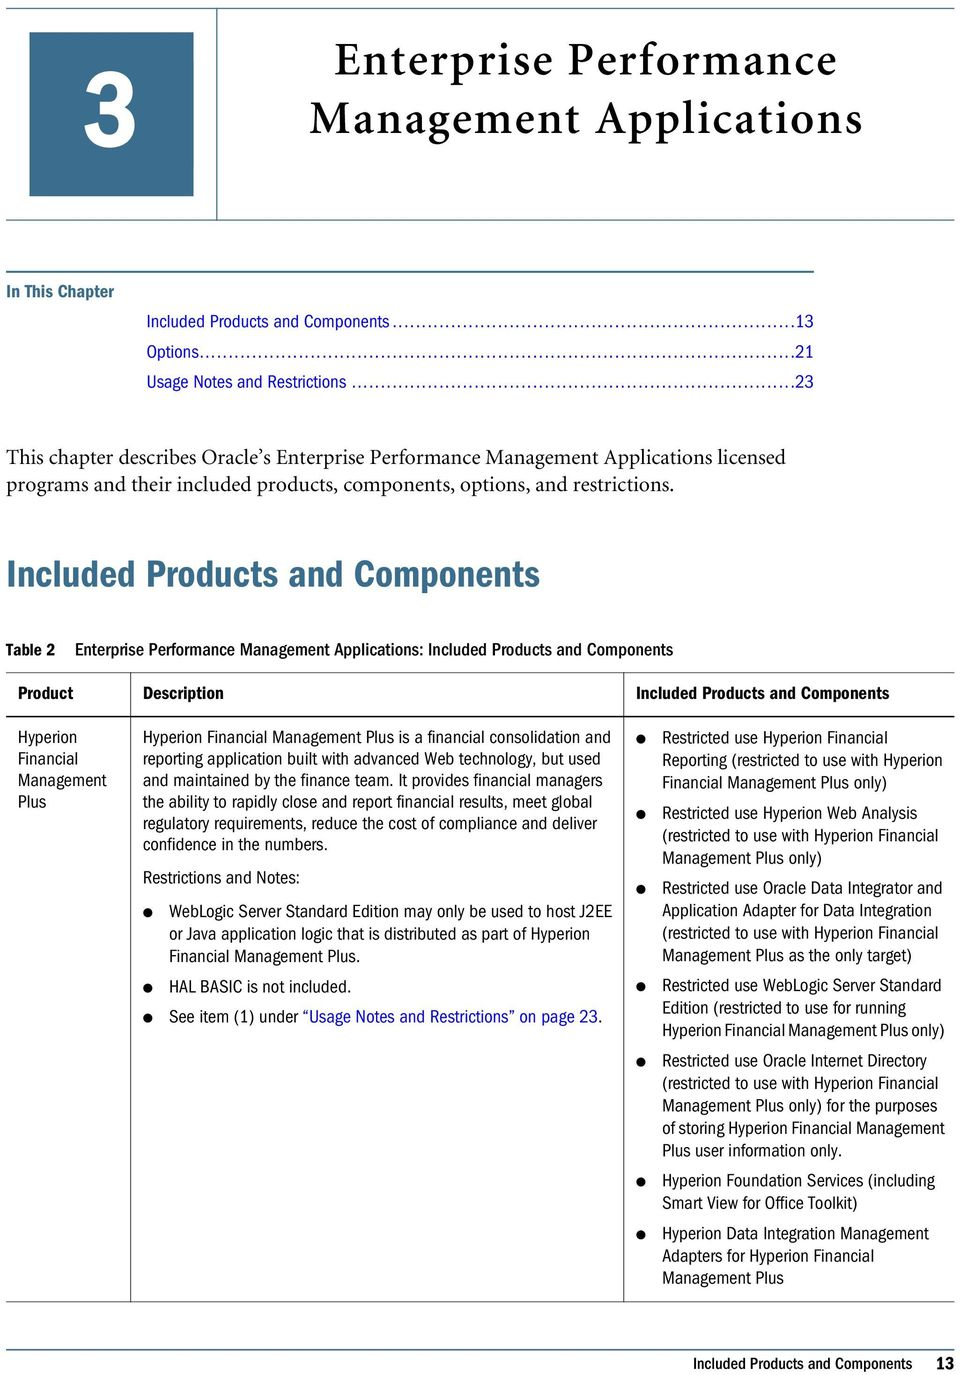 Included Products and Components Table 2 Enterprise Performance Management Applications: Included Products and Components Product Description Included Products and Components Financial Management